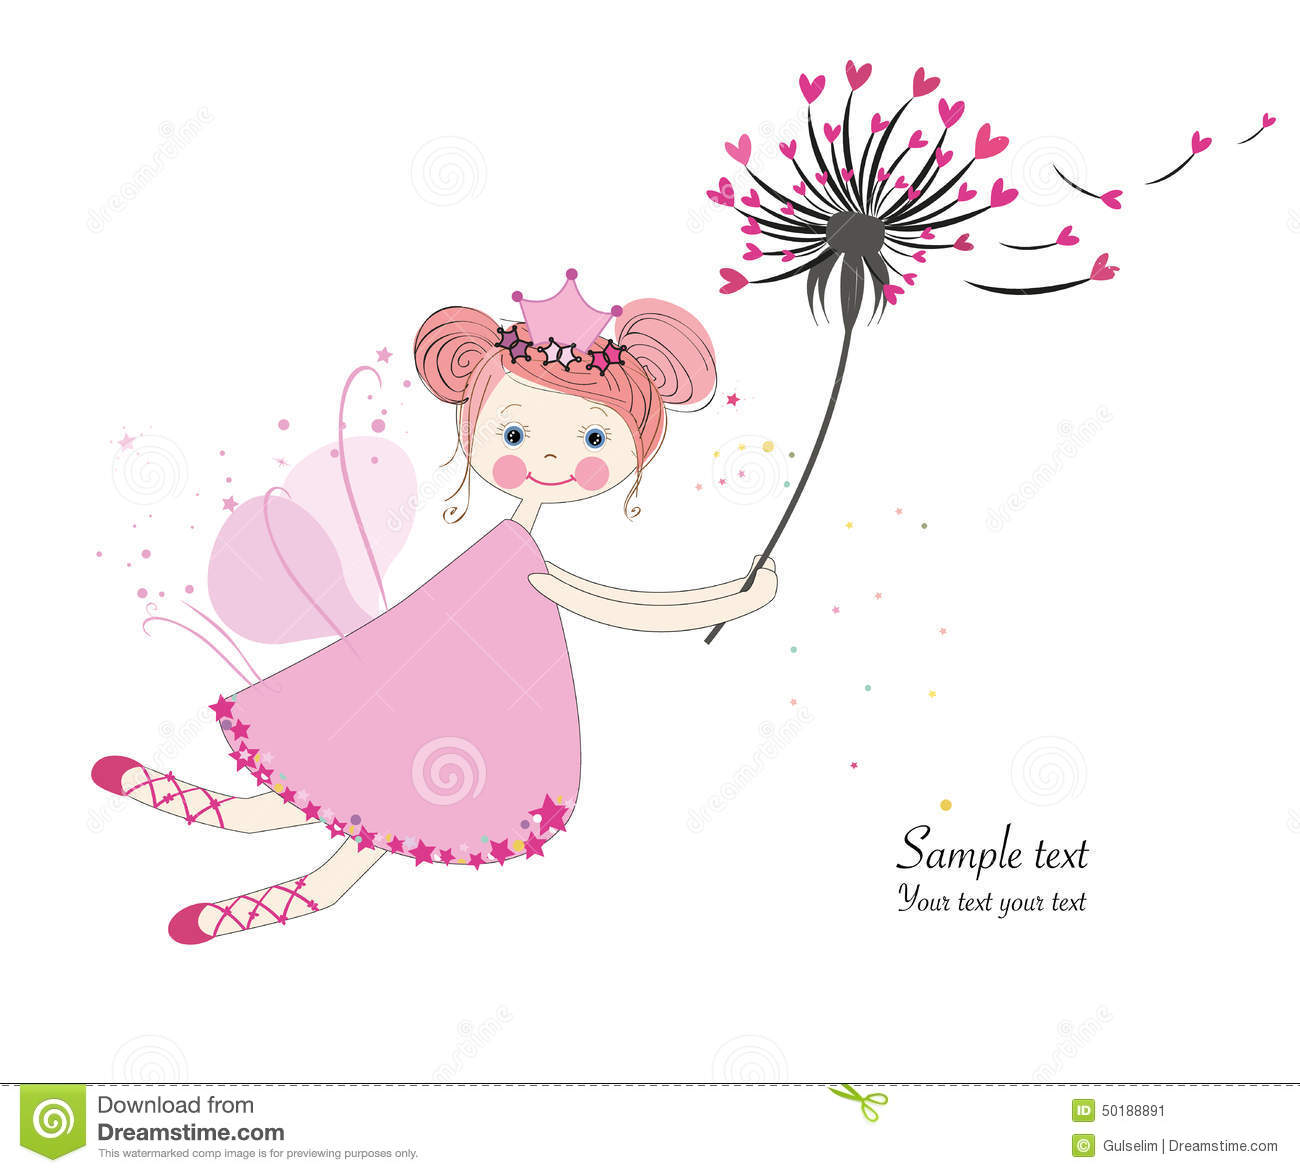 Wallpaper Download Cute Lovers Cute Fairytale With Dandelion Greeting Card Stock Vector